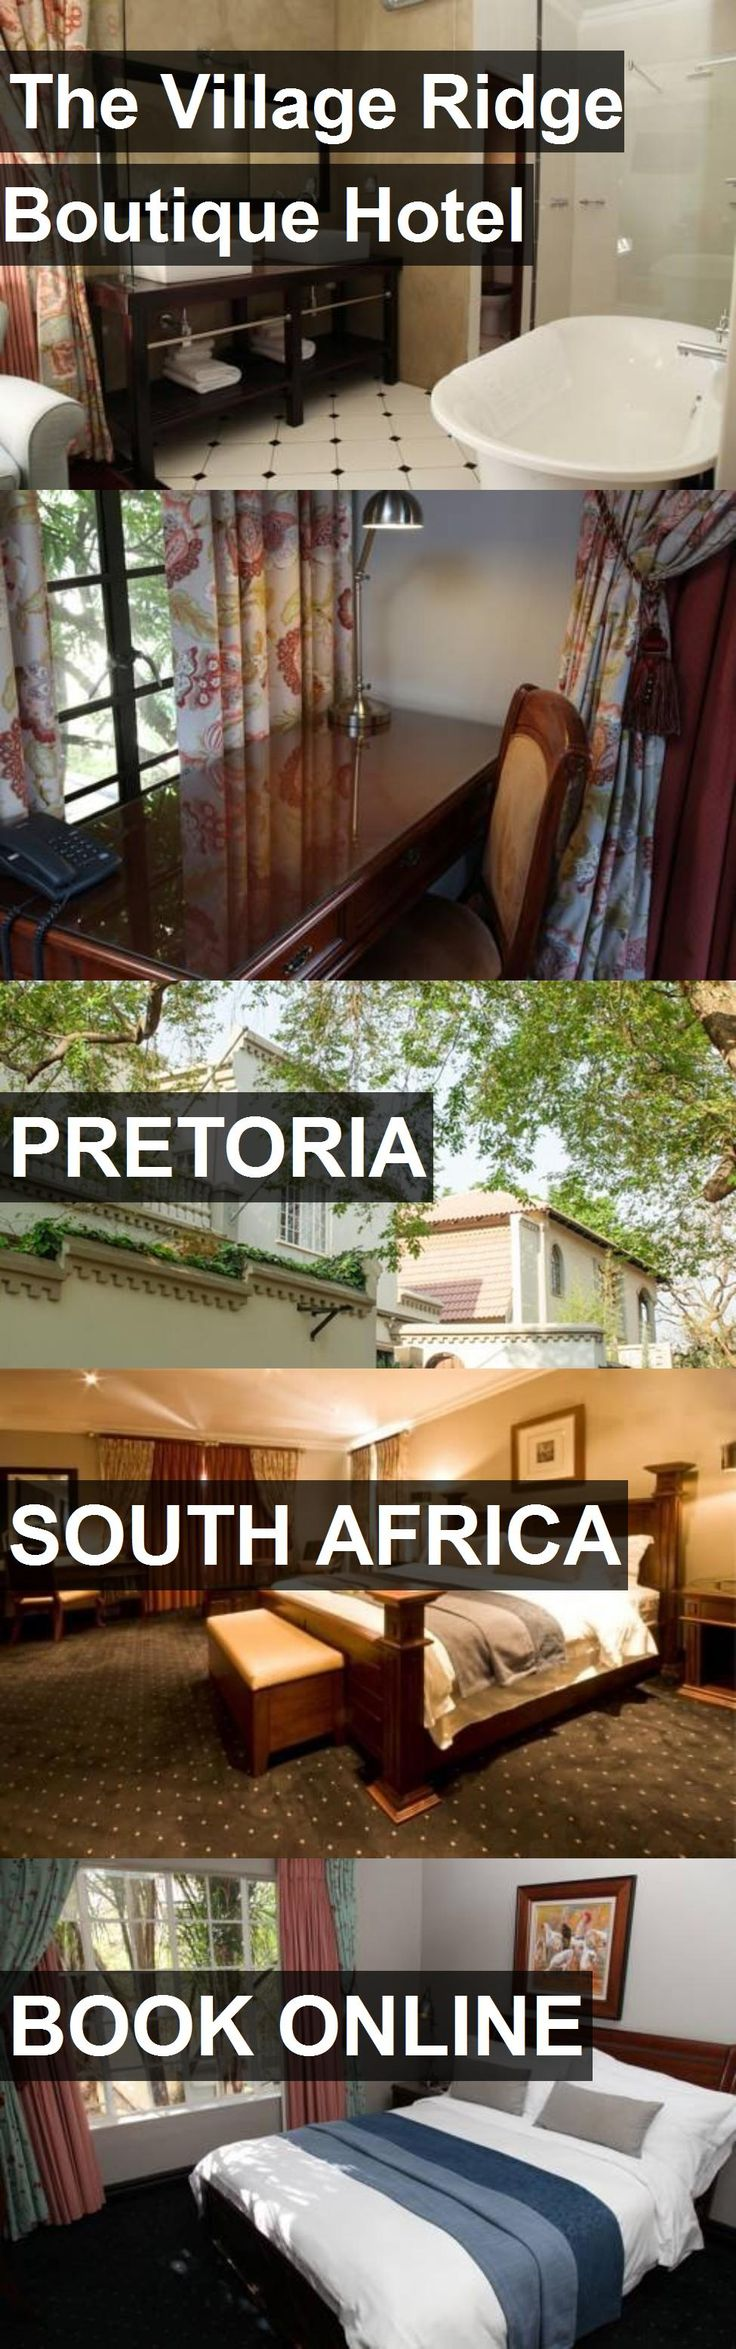 The Village Ridge Boutique Hotel in Pretoria, South Africa. For more information, photos, reviews and best prices please follow the link. #SouthAfrica #Pretoria #travel #vacation #hotel